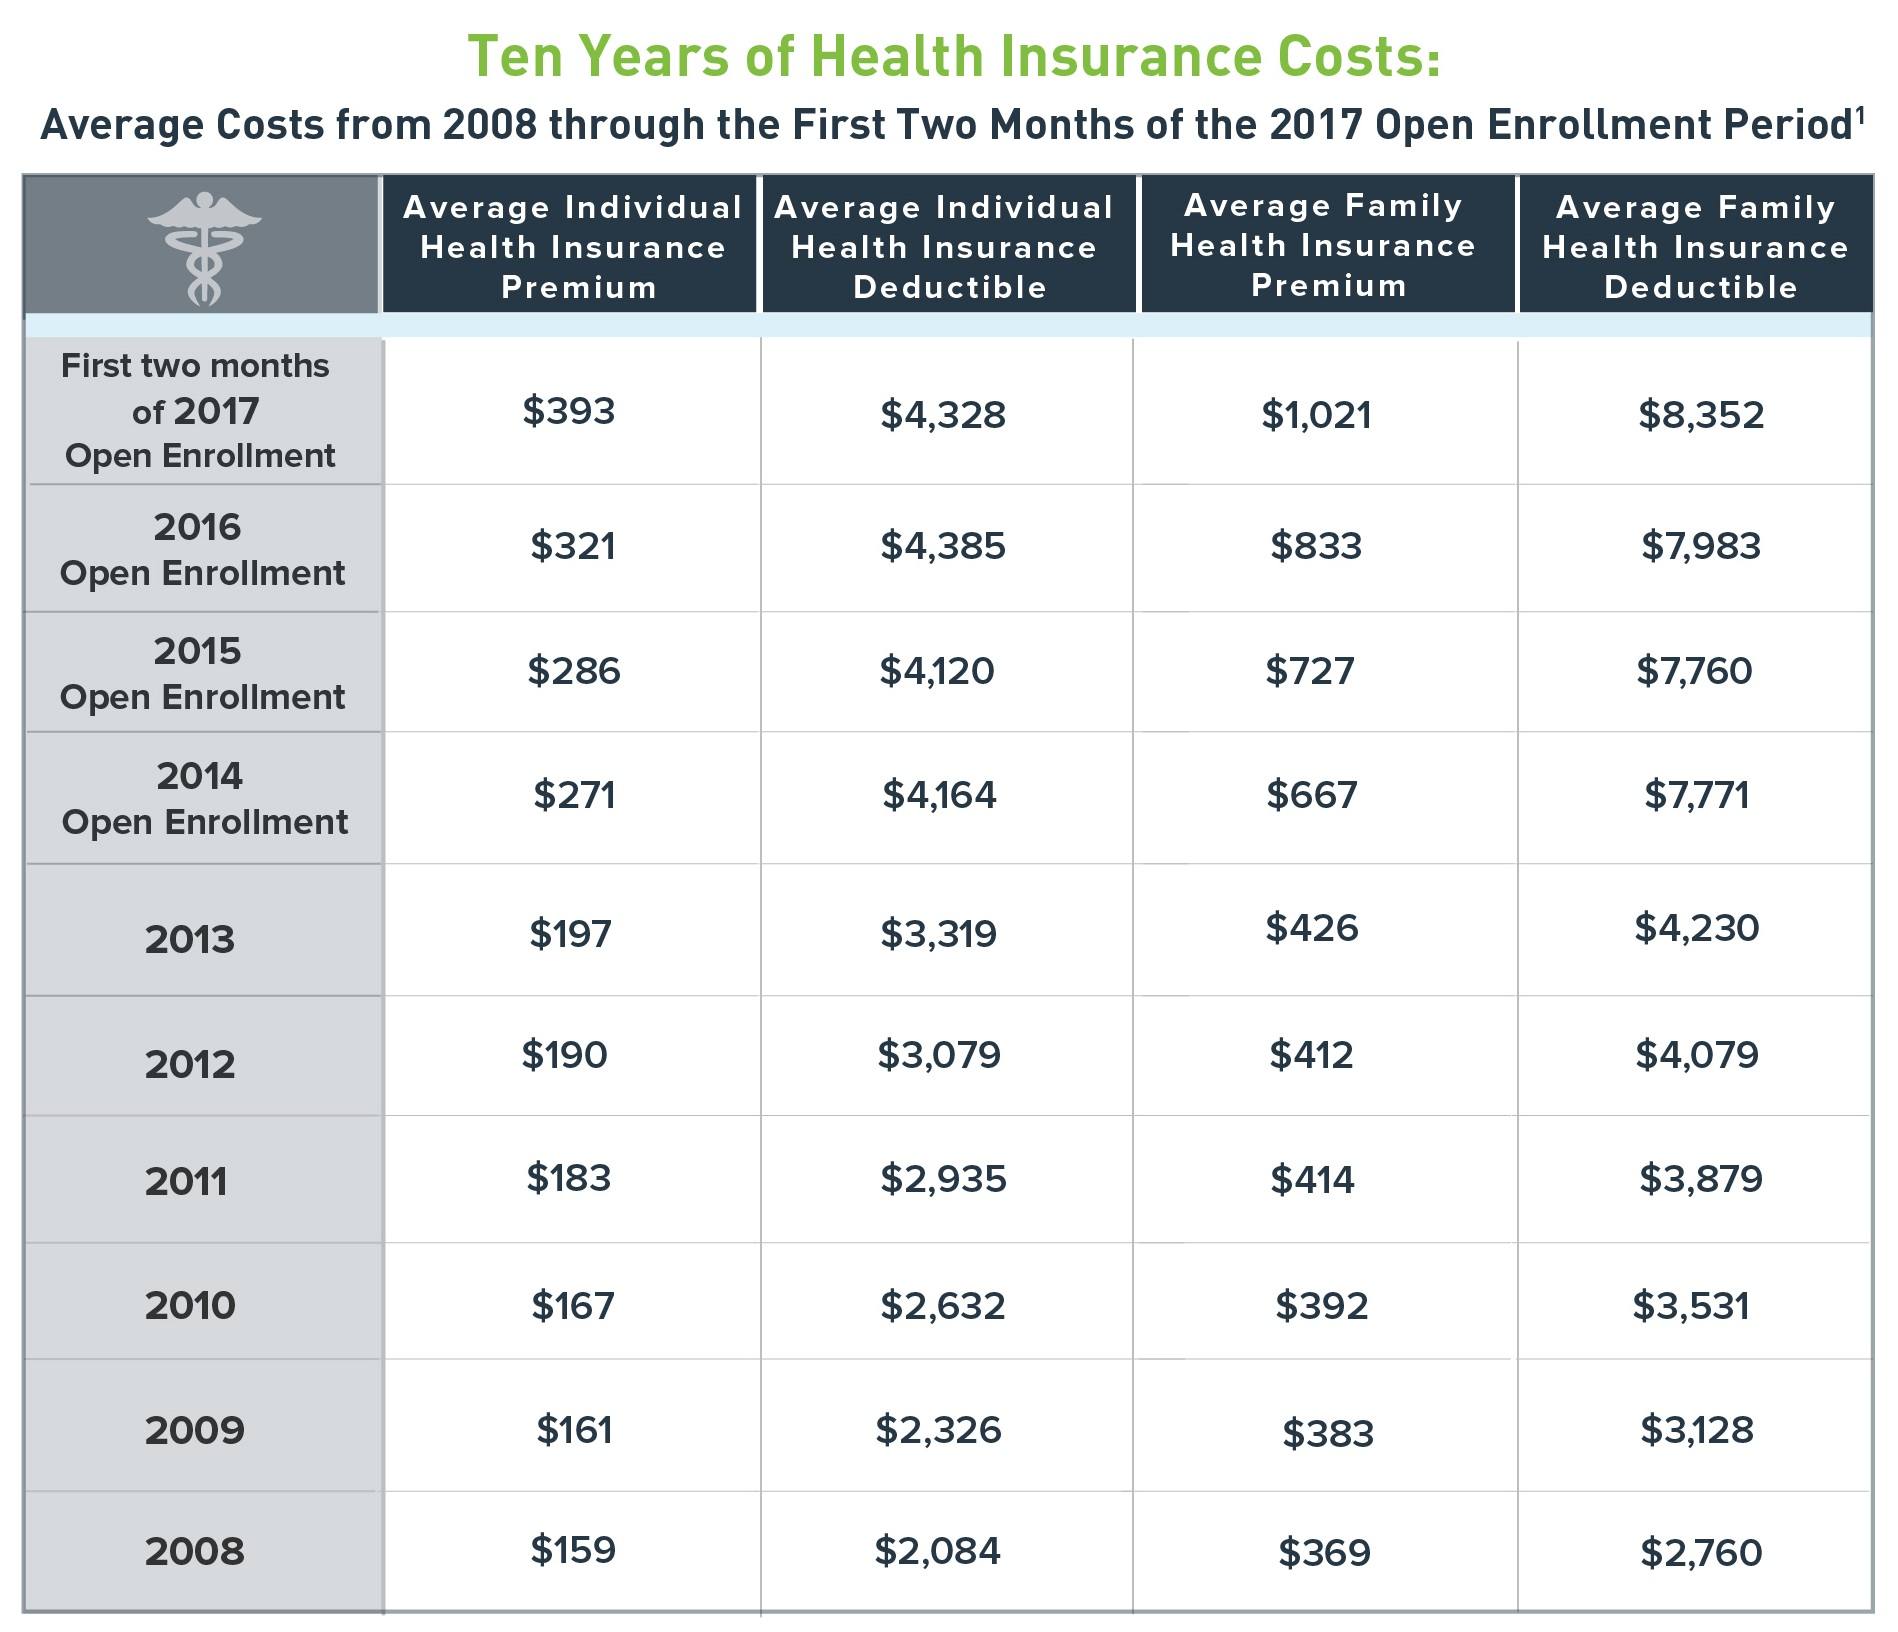 Ten Years of Health Insurance Table